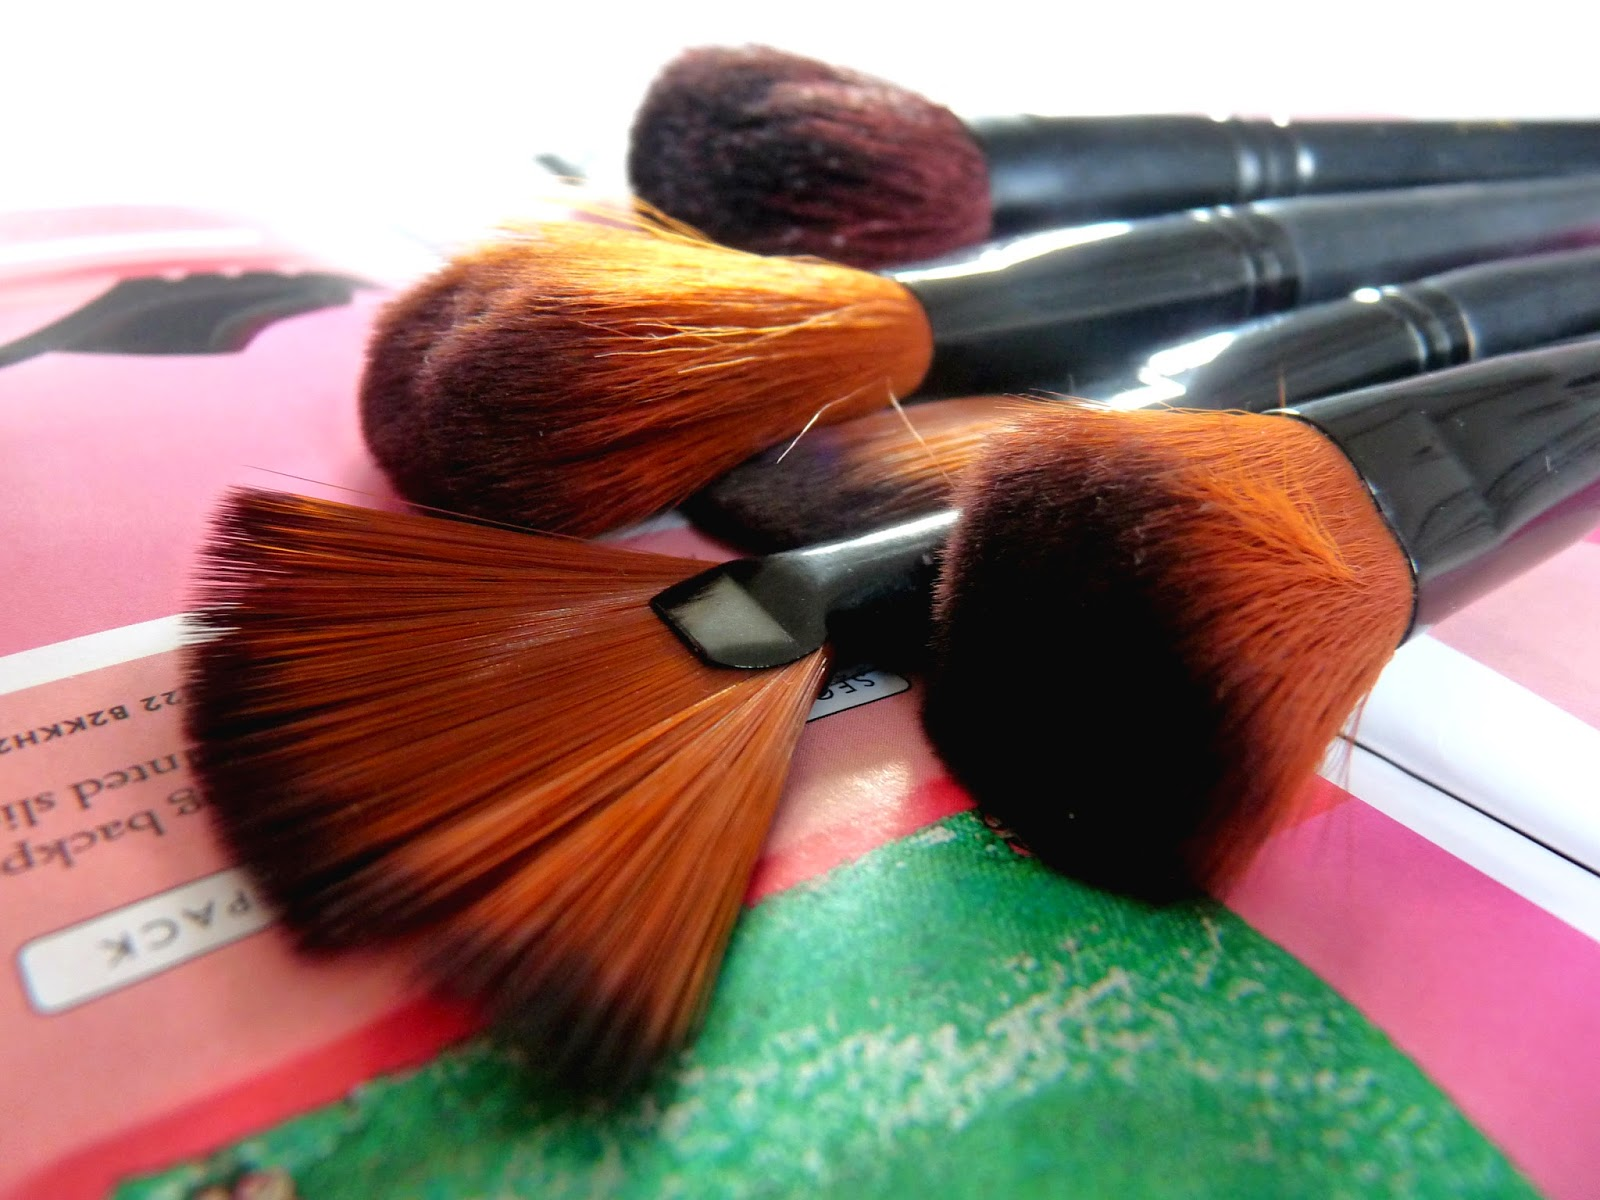 DIY makeup brush cleaner how to make your own makeup brush cleaner